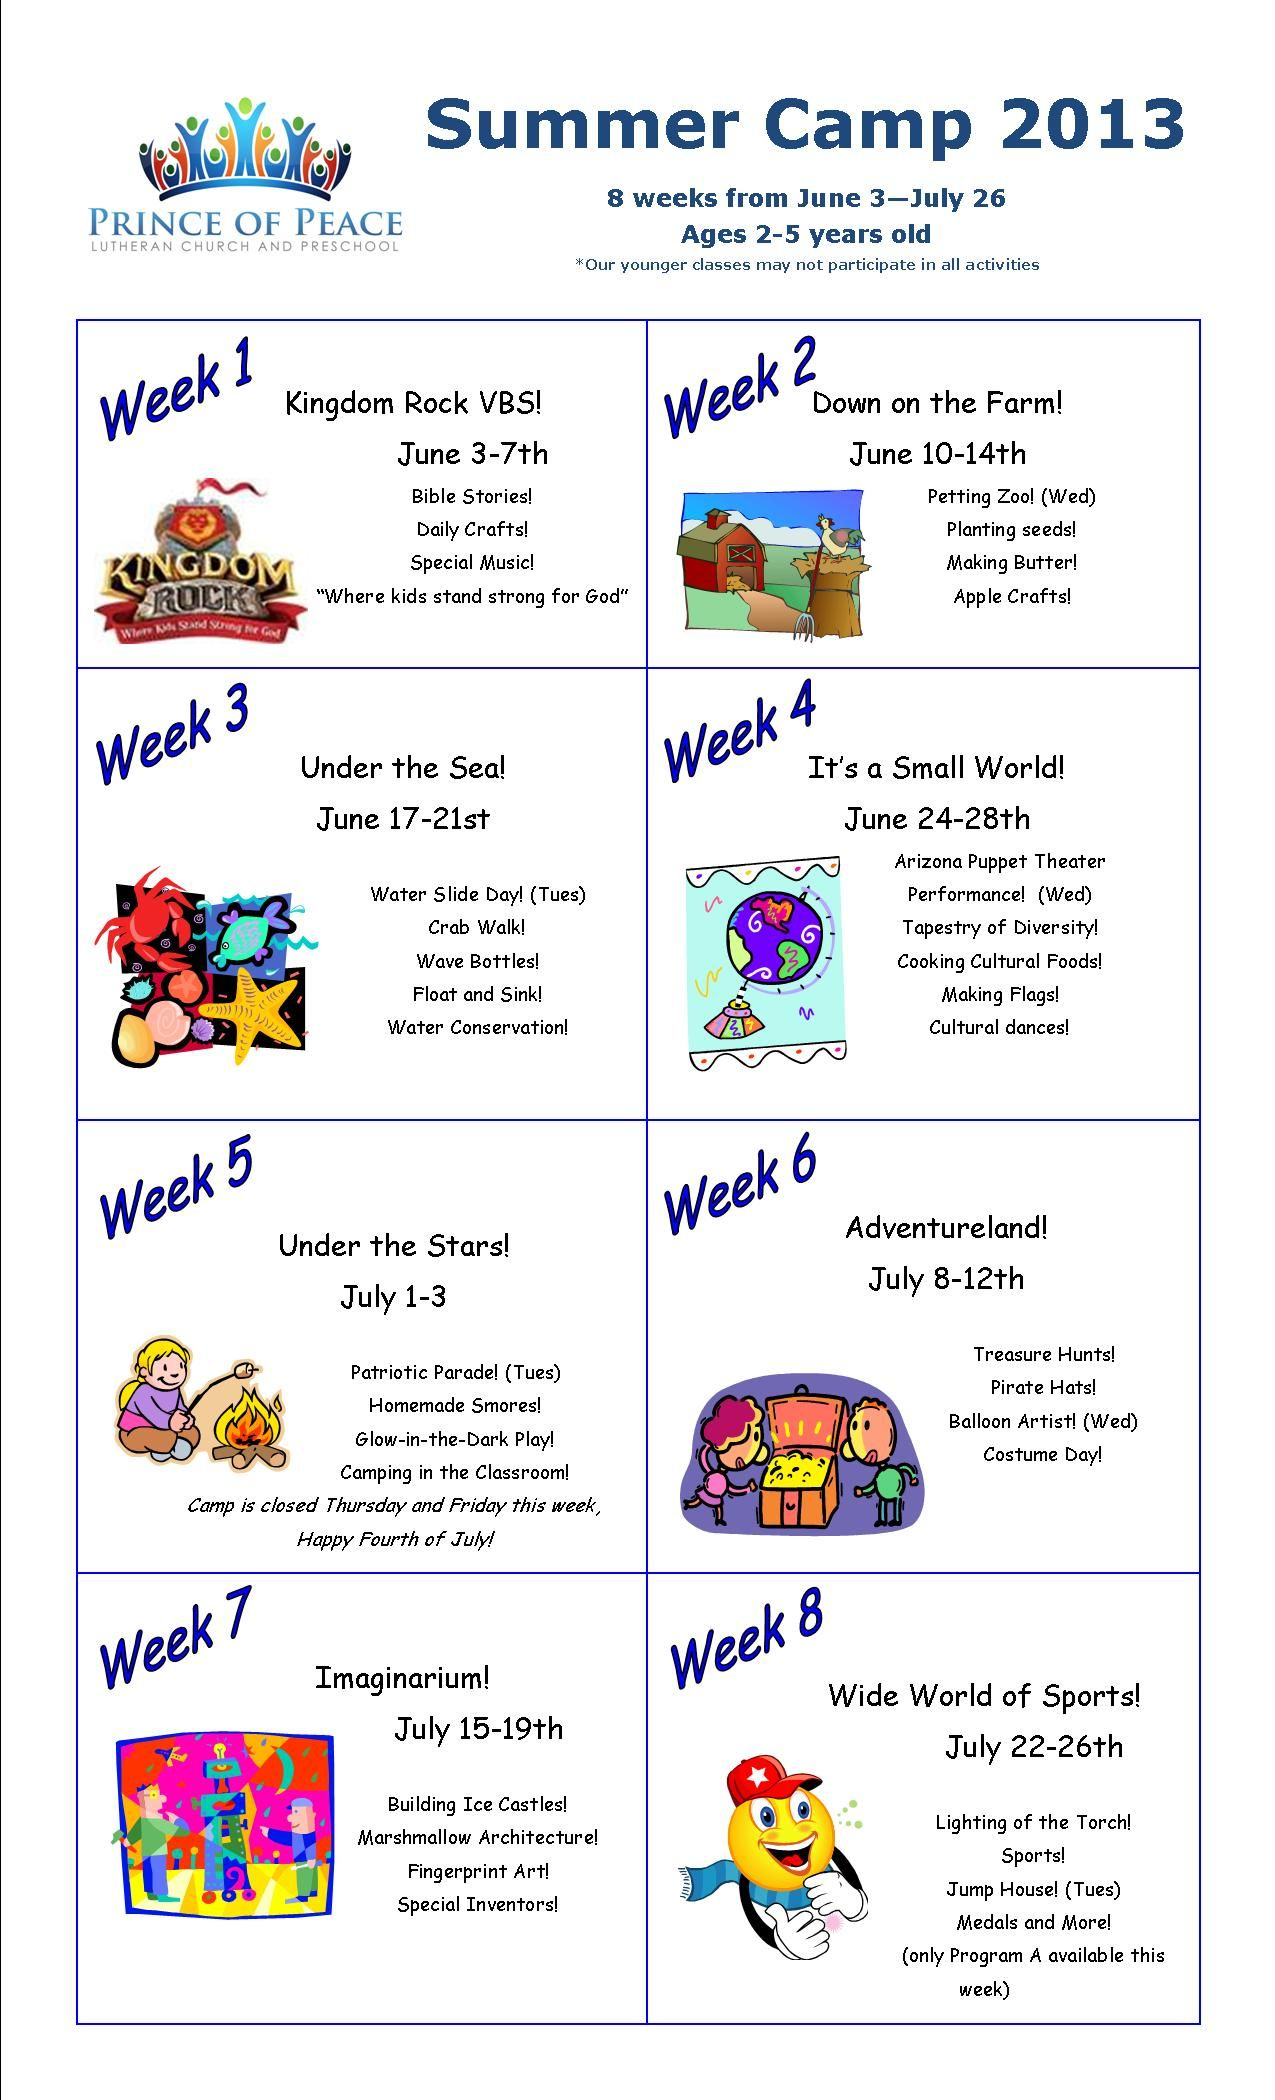 10 Most Popular Ideas For Summer Camp Themes summer camp calendar 2013 i love this idea to devote a week to 5 2020